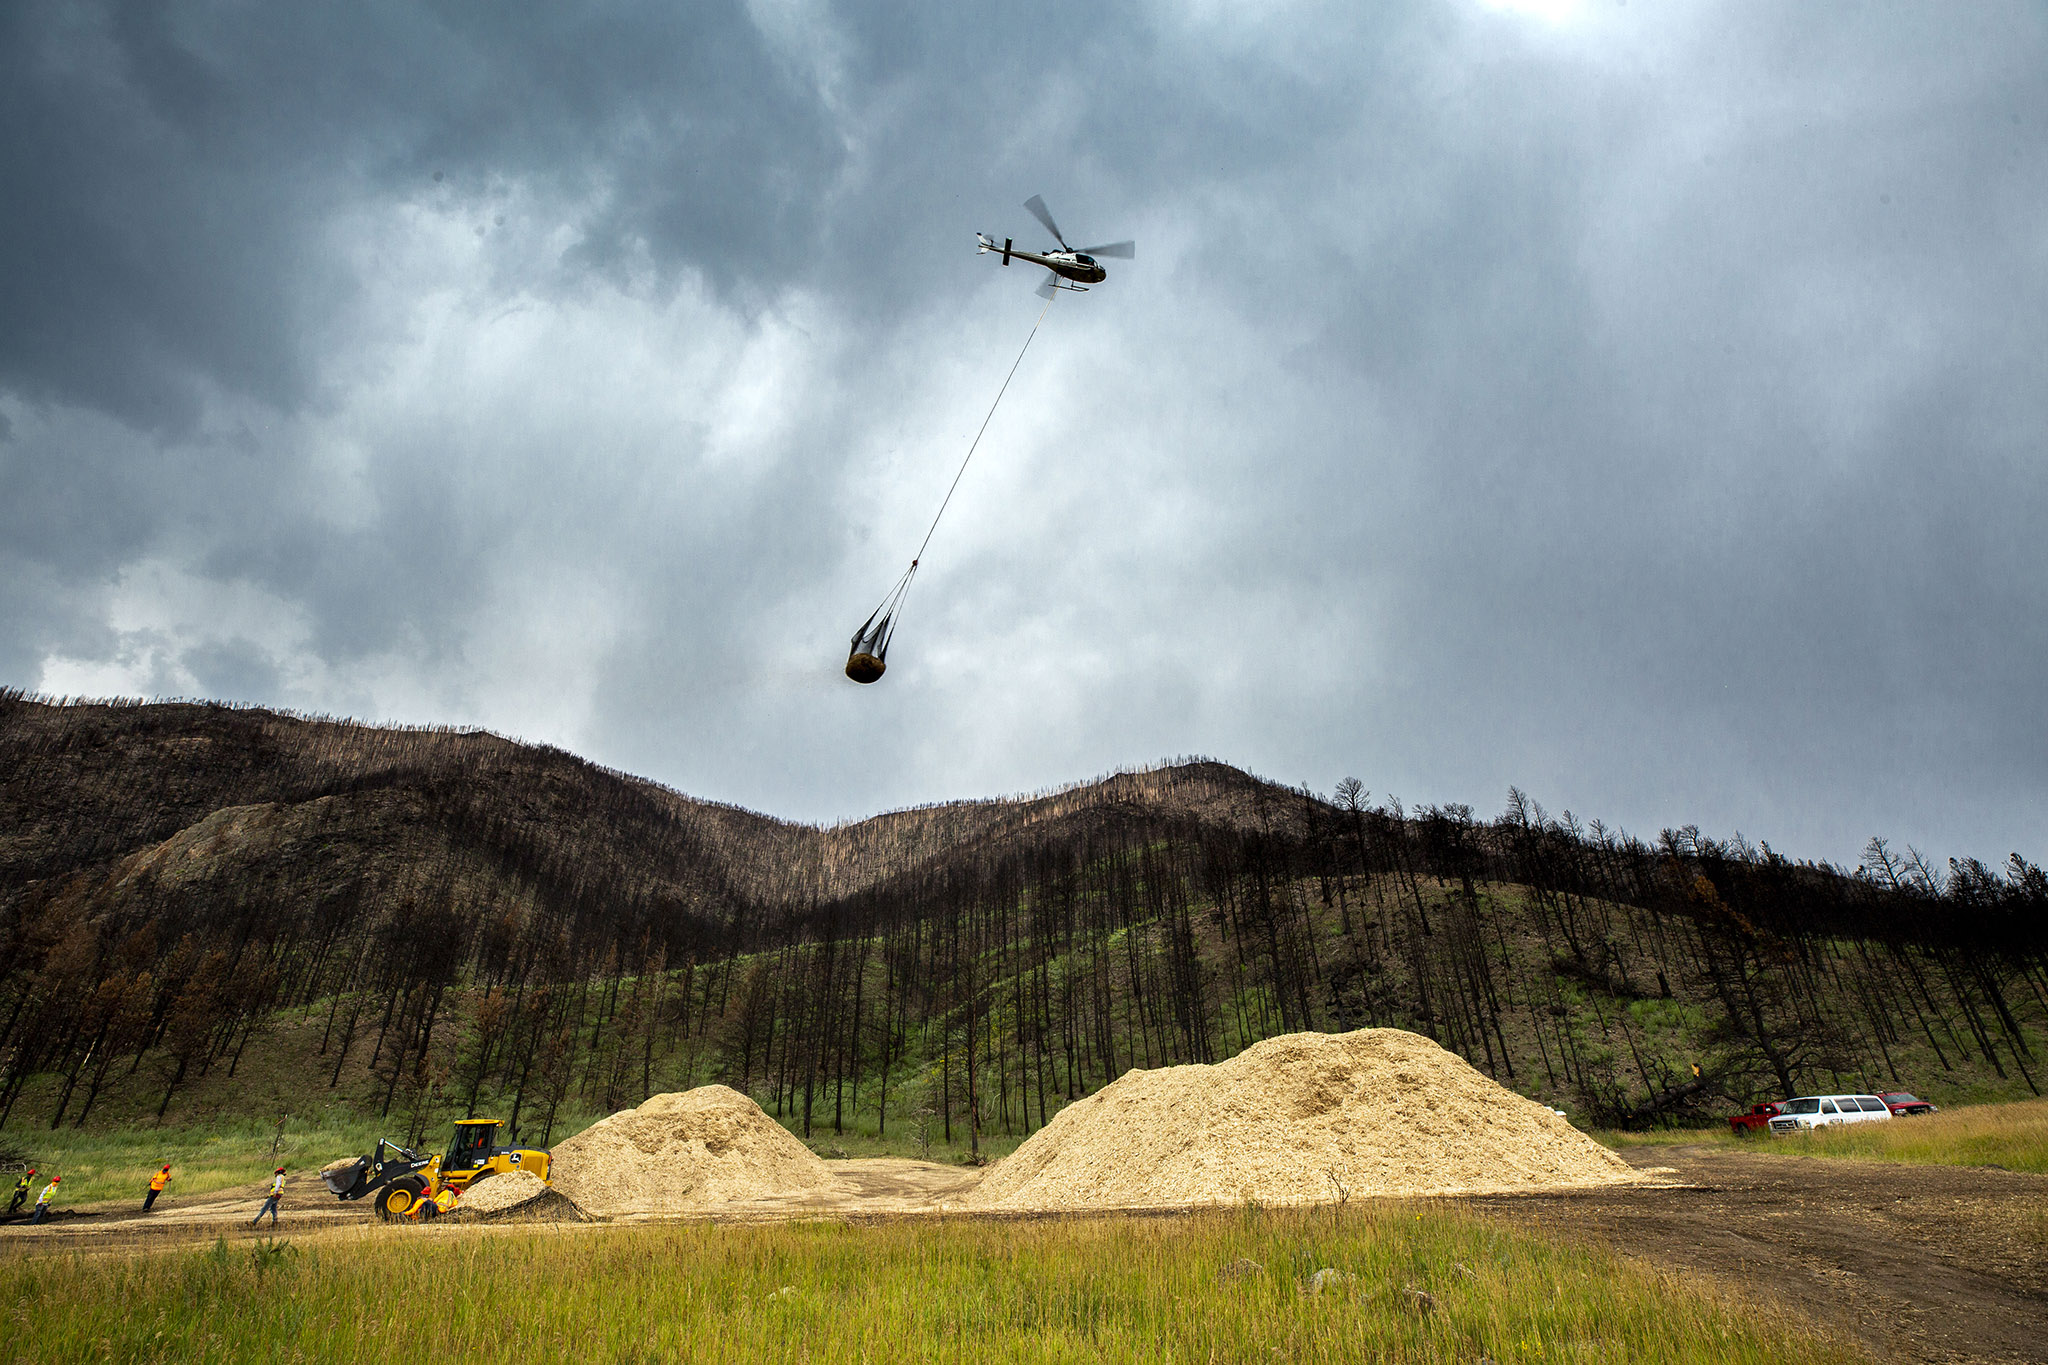 A helicopter picks up mulch to spread in Poudre Canyon, about 50 miles west of Fort Collins, to try to stem silt runoff during large rains. Aug. 8, 2021.